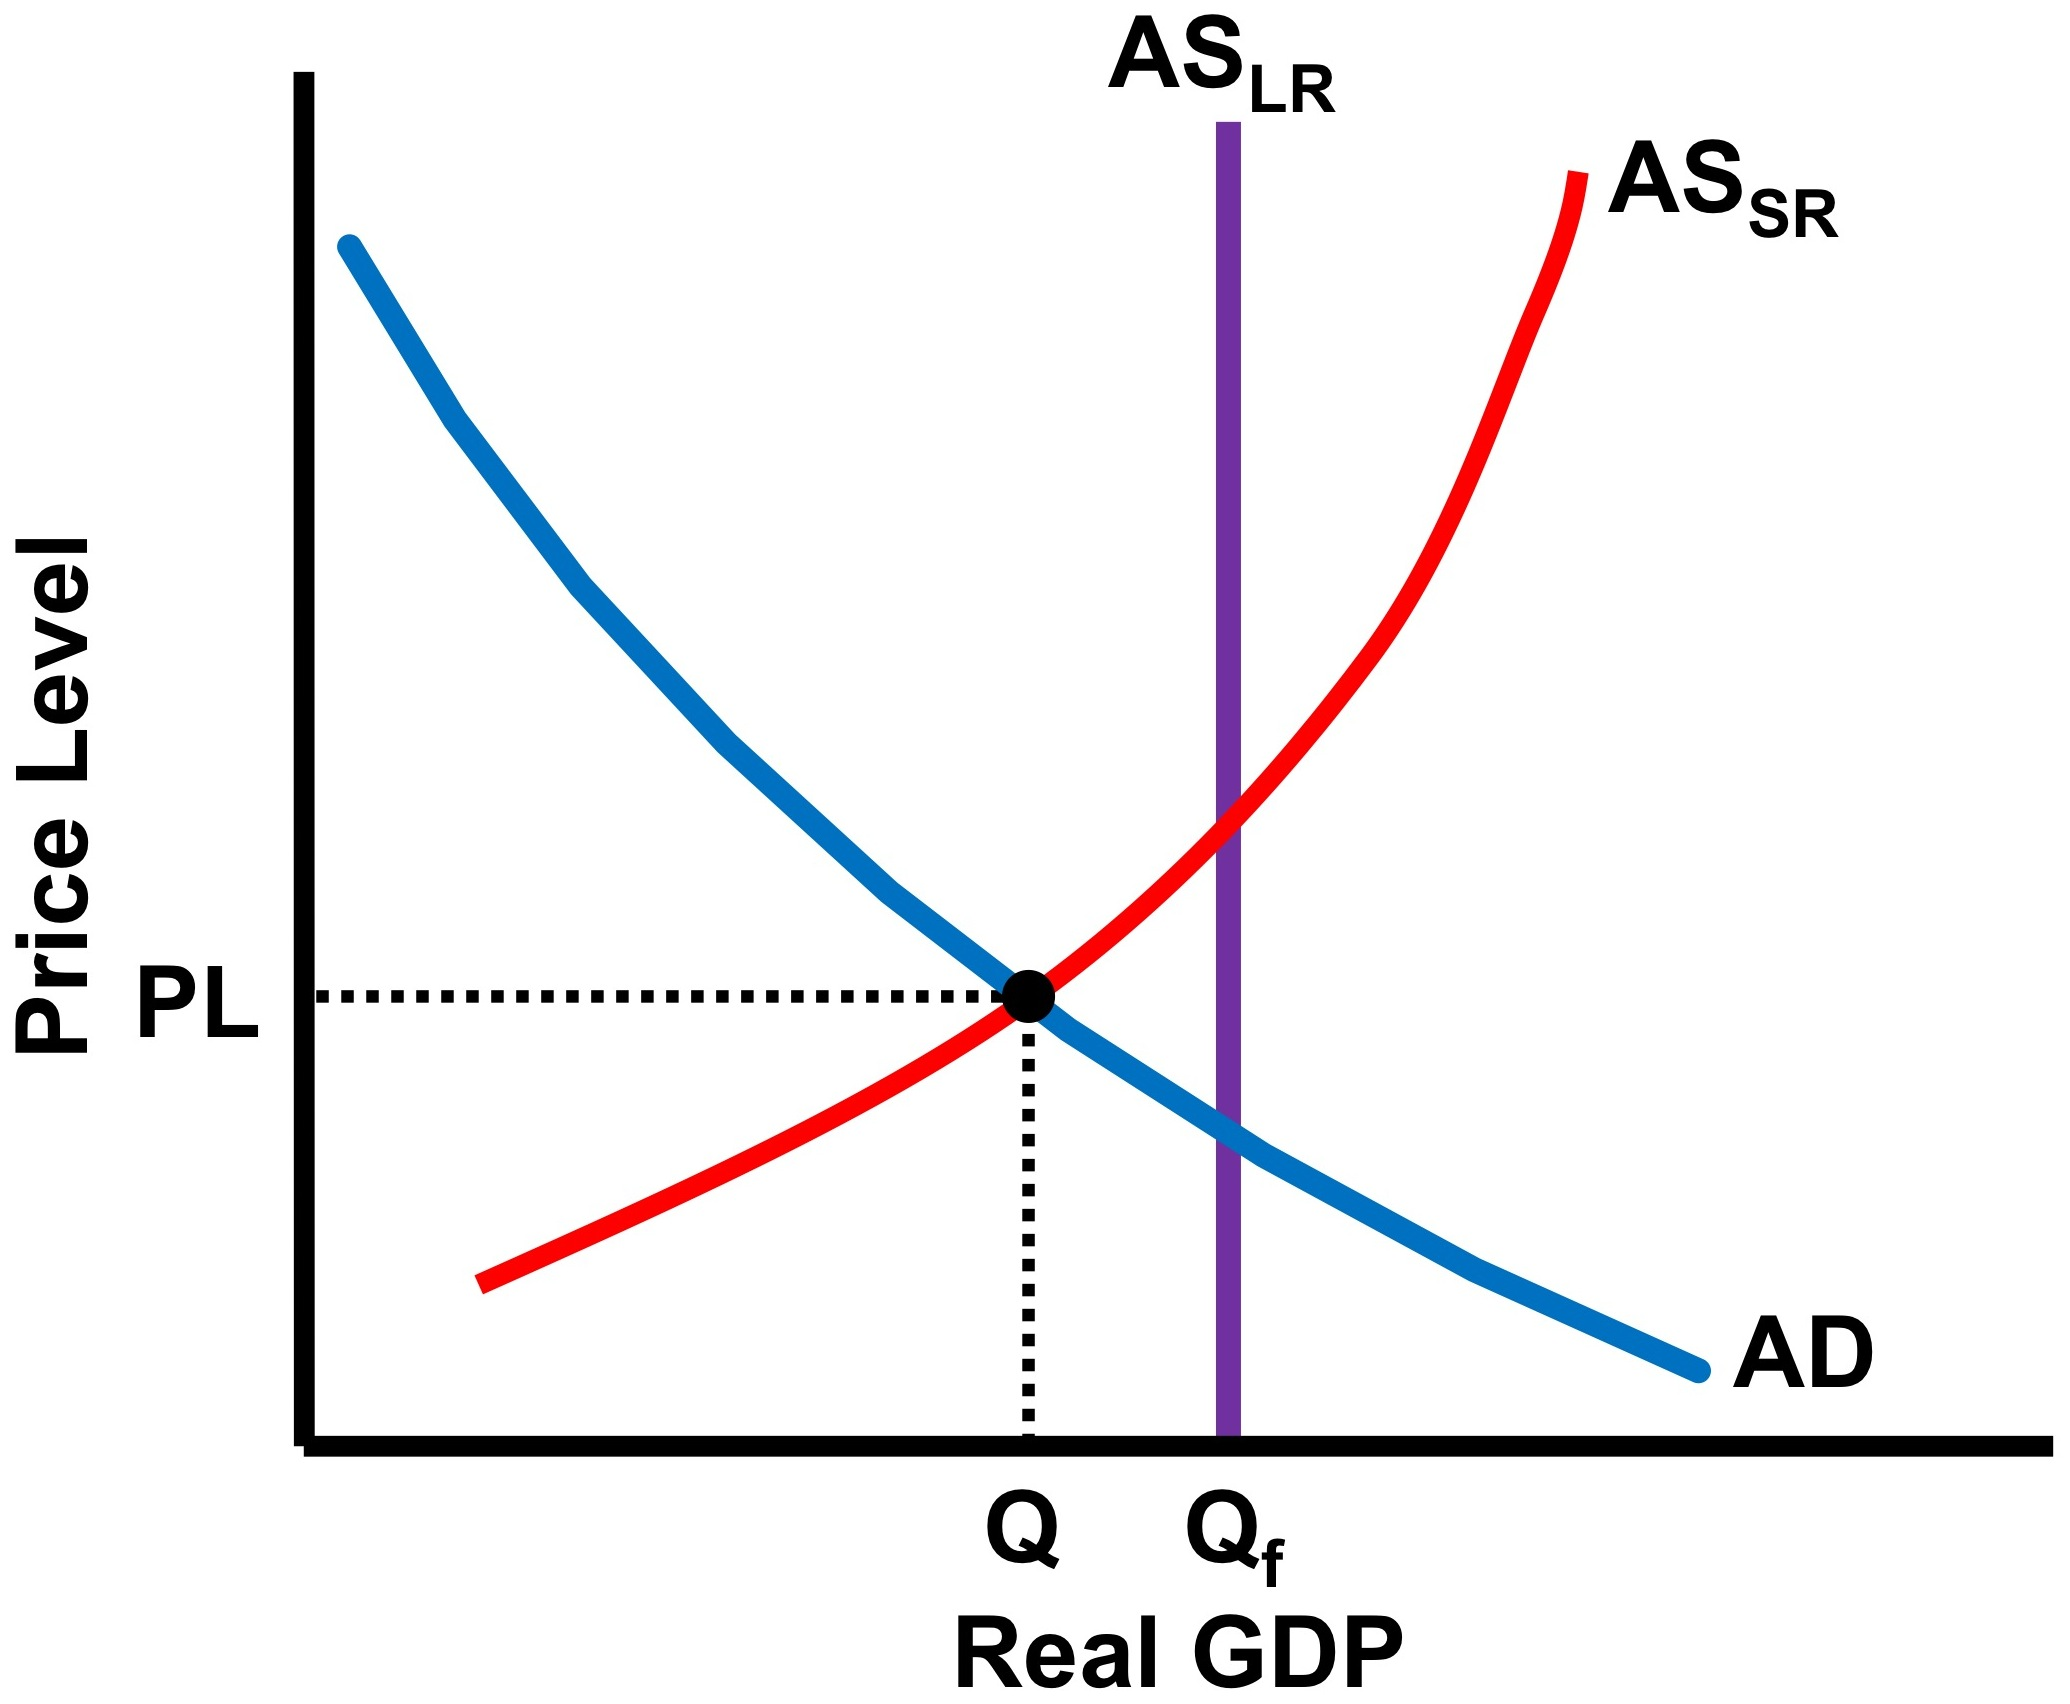 Macro Unit 3 AD/AS and Fiscal Policy - No Bull Economics Lessons